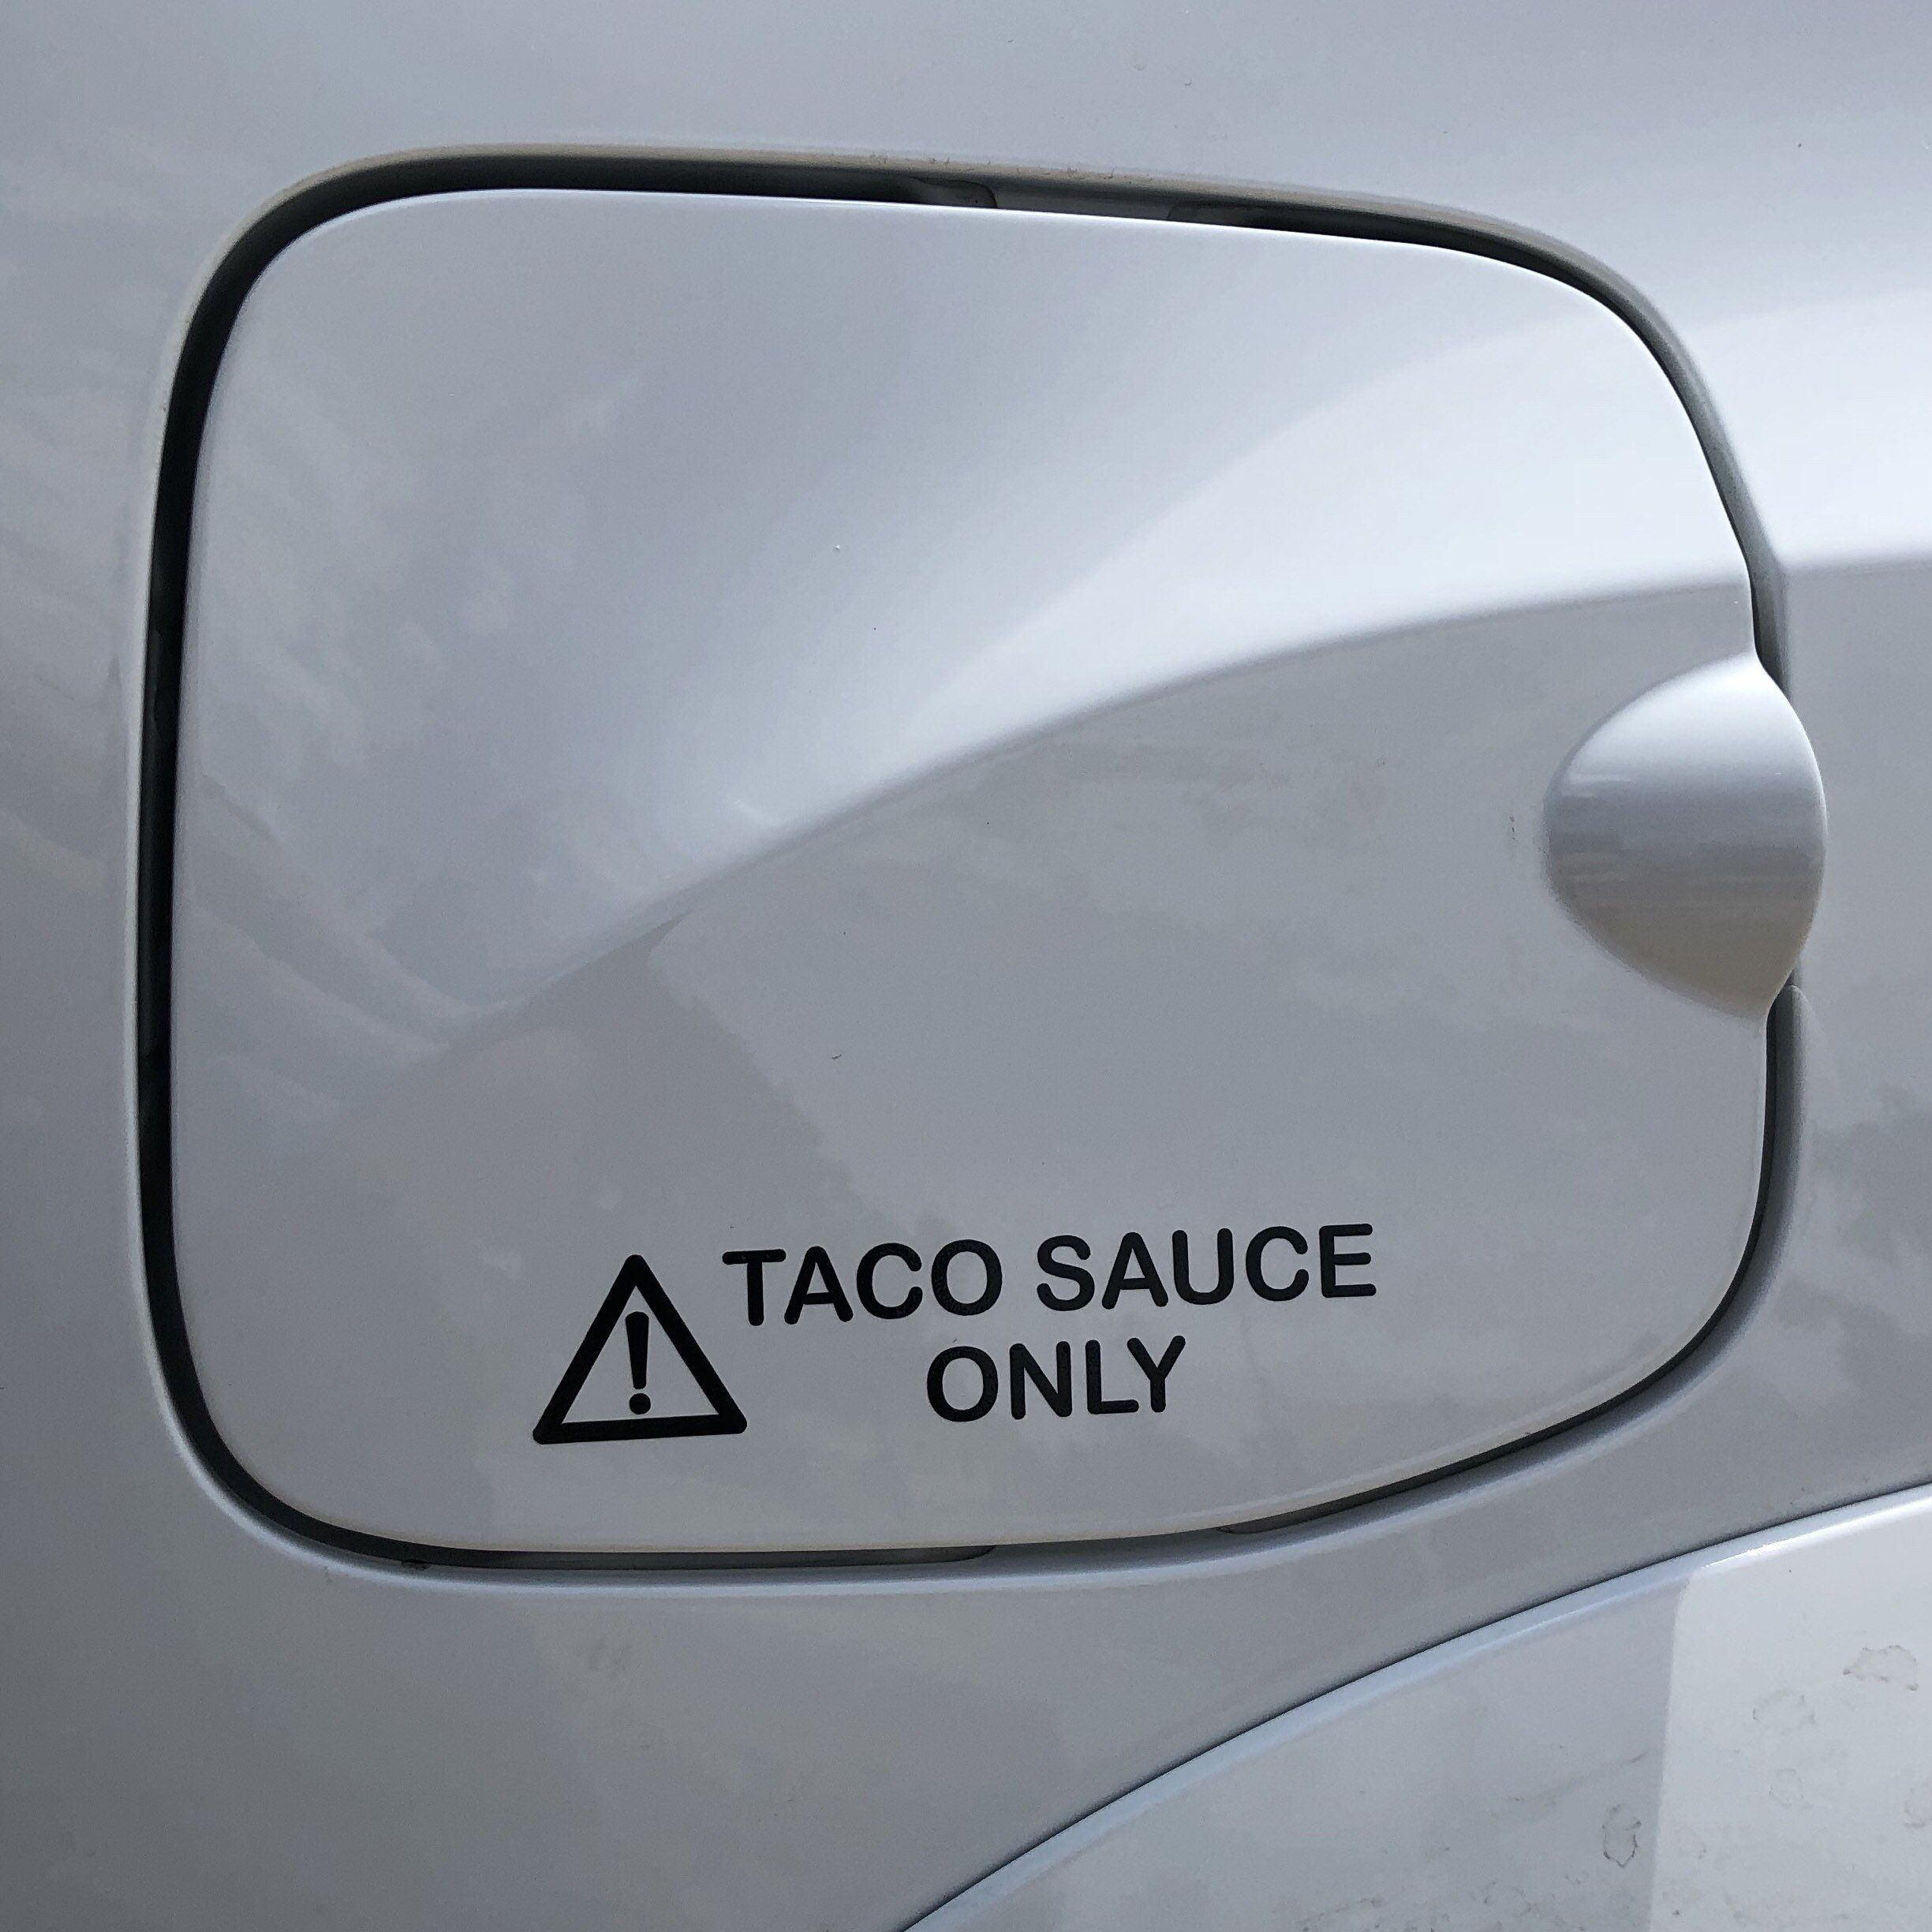 Taco sauce only toyota tacoma sticker made from high quality sign vinyl by a fellow tacoma owner art tacoma toyota taco sticker signvinyl tacomalife